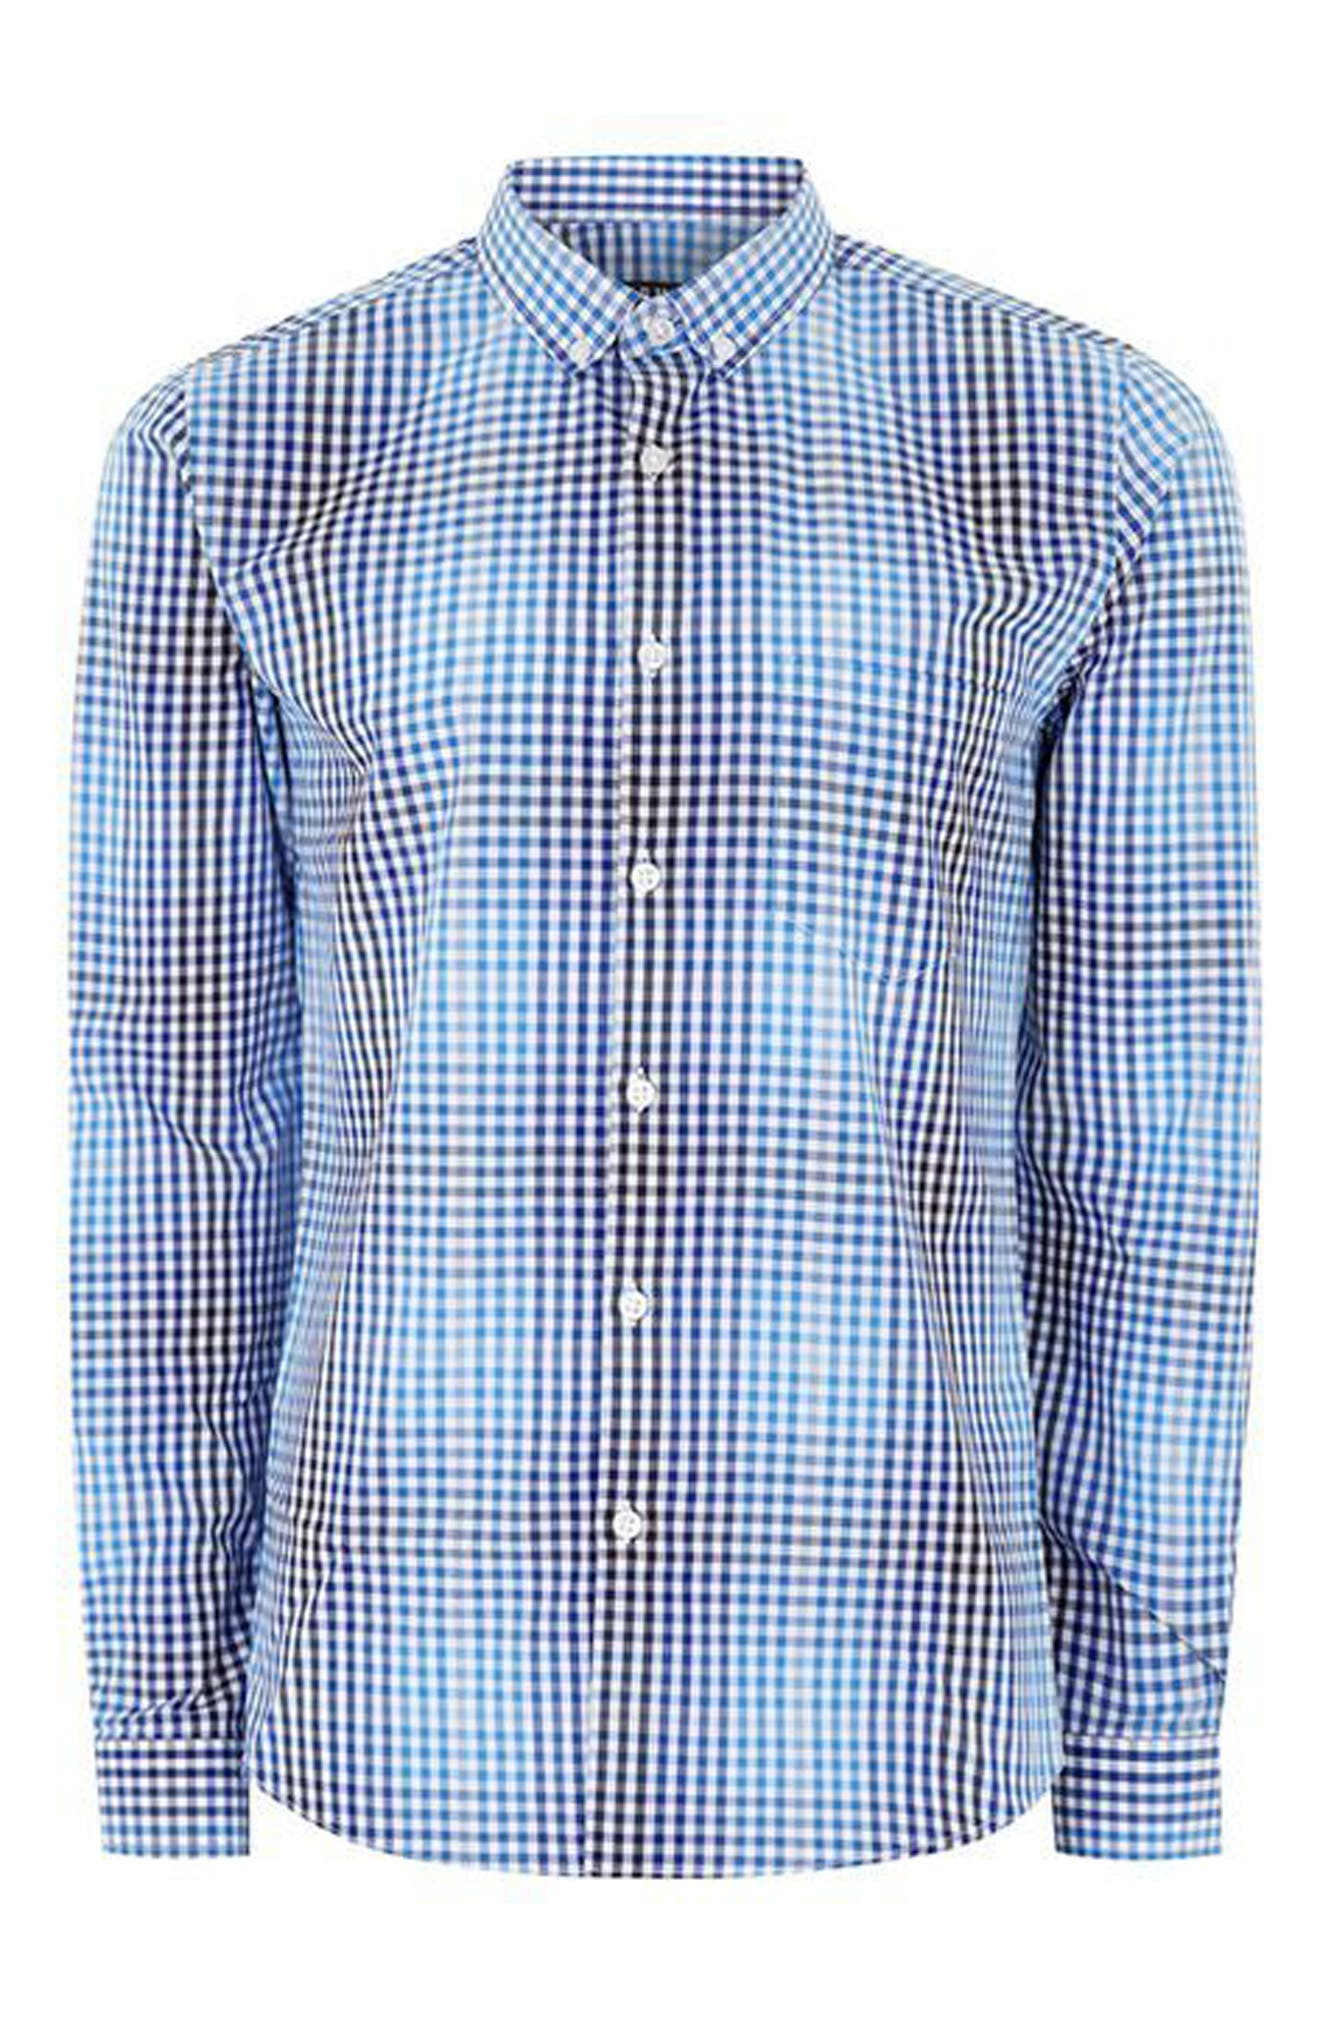 Ombré Gingham Woven Shirt,                             Alternate thumbnail 4, color,